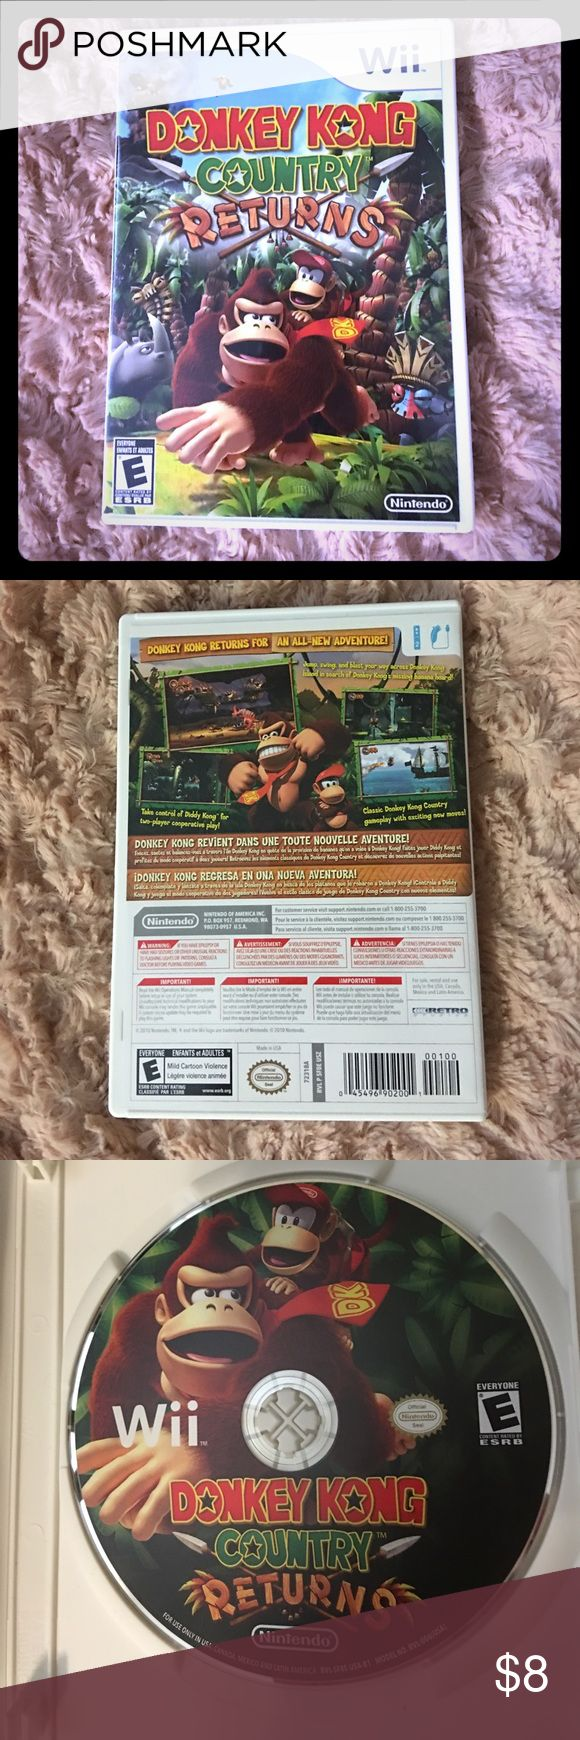 Donkey Kong Country Returns Wii game: Donkey Kong Country Returns. Rarely used. Nintendo Other